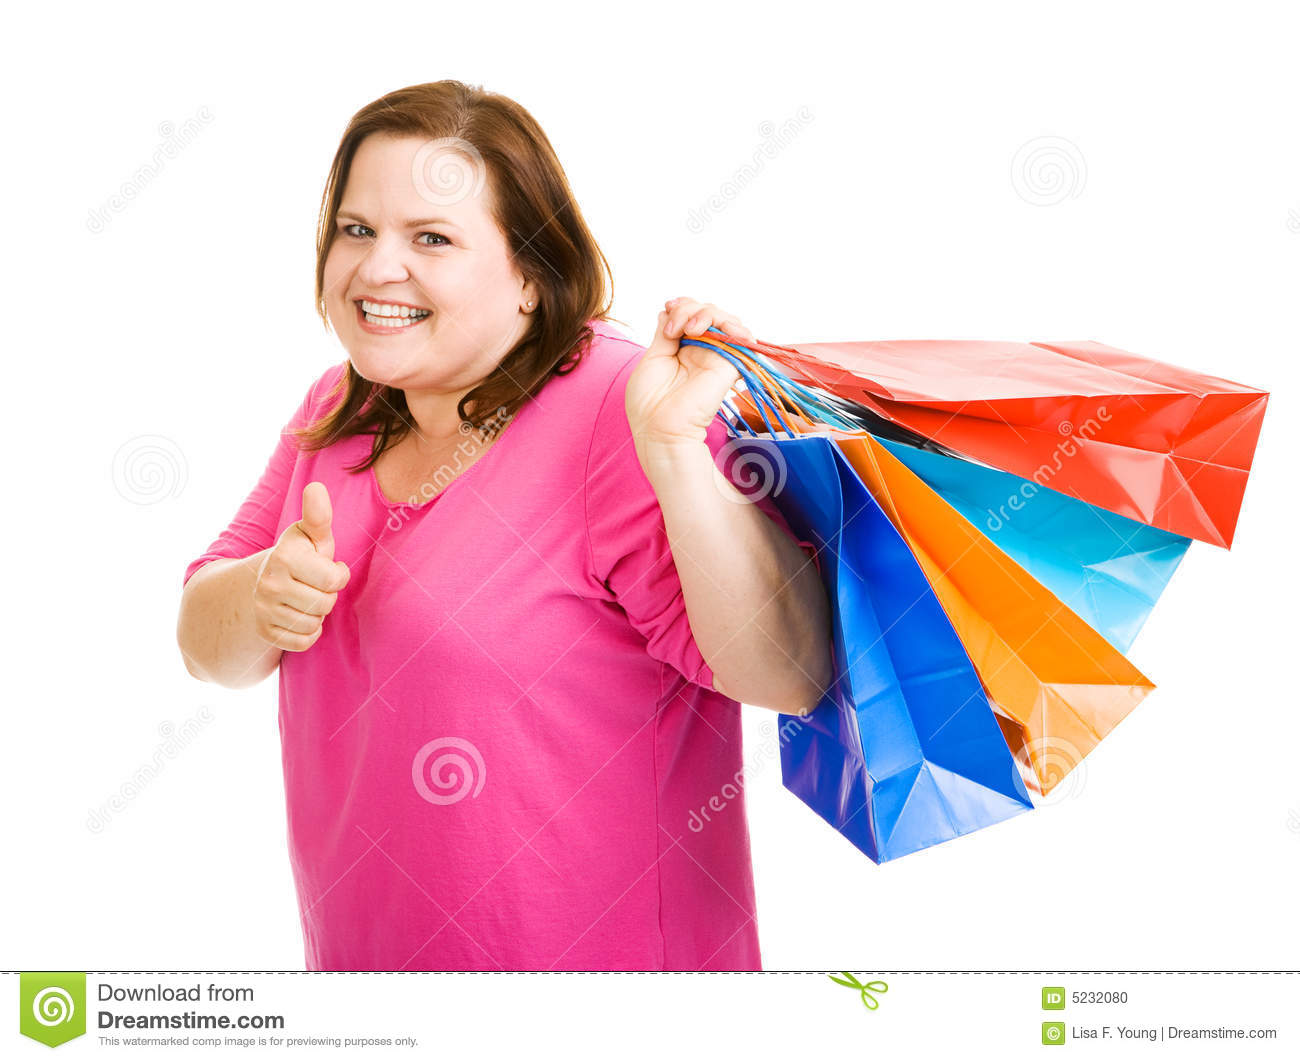 ... her shopping bags and giving a thumbs-up sign. Isolated on white